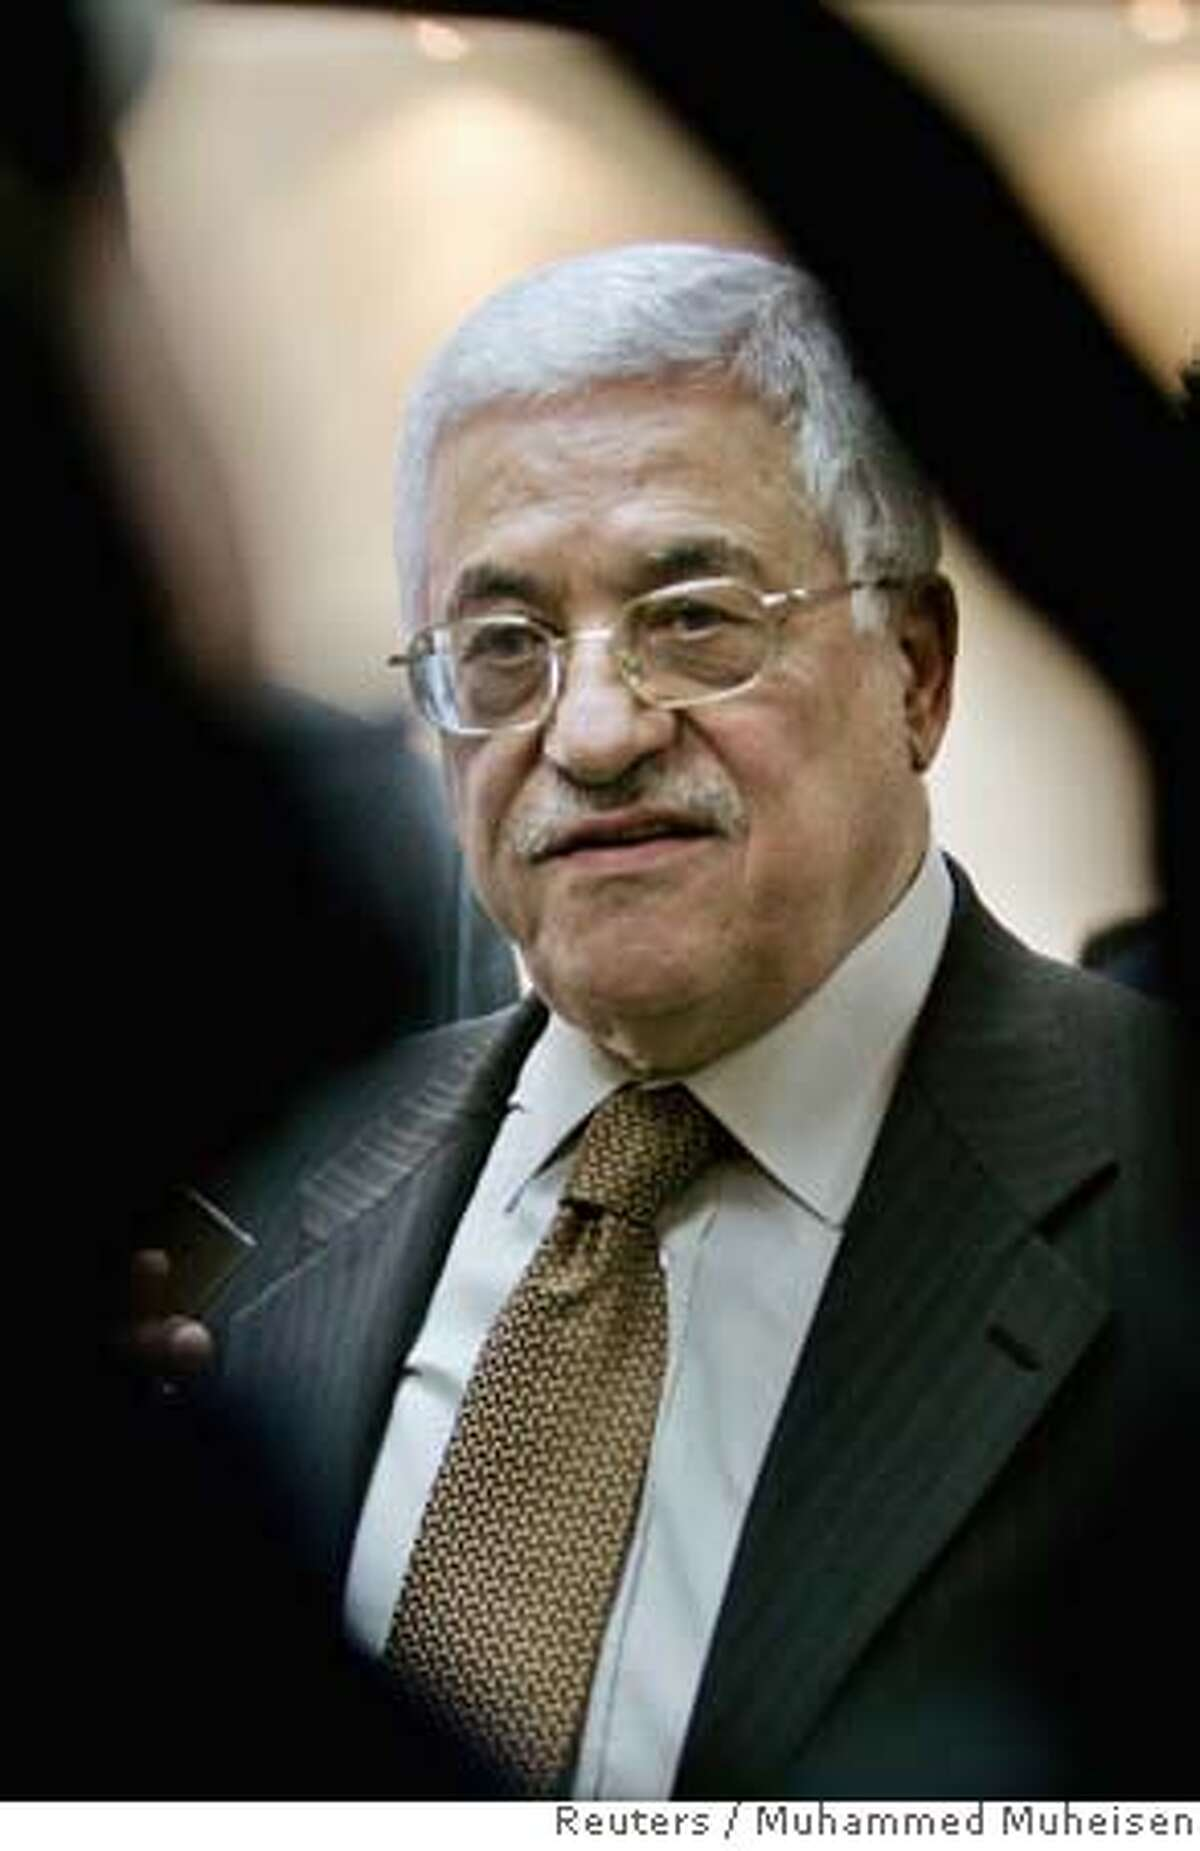 Palestinian President Mahmoud Abbas speaks to the media after a meeting in his office in the West Bank city of Ramallah December 11, 2006. Unidentified gunmen killed three sons of a Palestinian intelligence official loyal to Abbas in Gaza on Monday, firing at the car as it dropped them at school, police and hospital officials said. REUTERS//Muhammed Muheisen/Pool (WEST BANK) Ran on: 12-14-2006 The Presidential Guard has increased to 1,000, up from about 90 officers under Yasser Arafat.